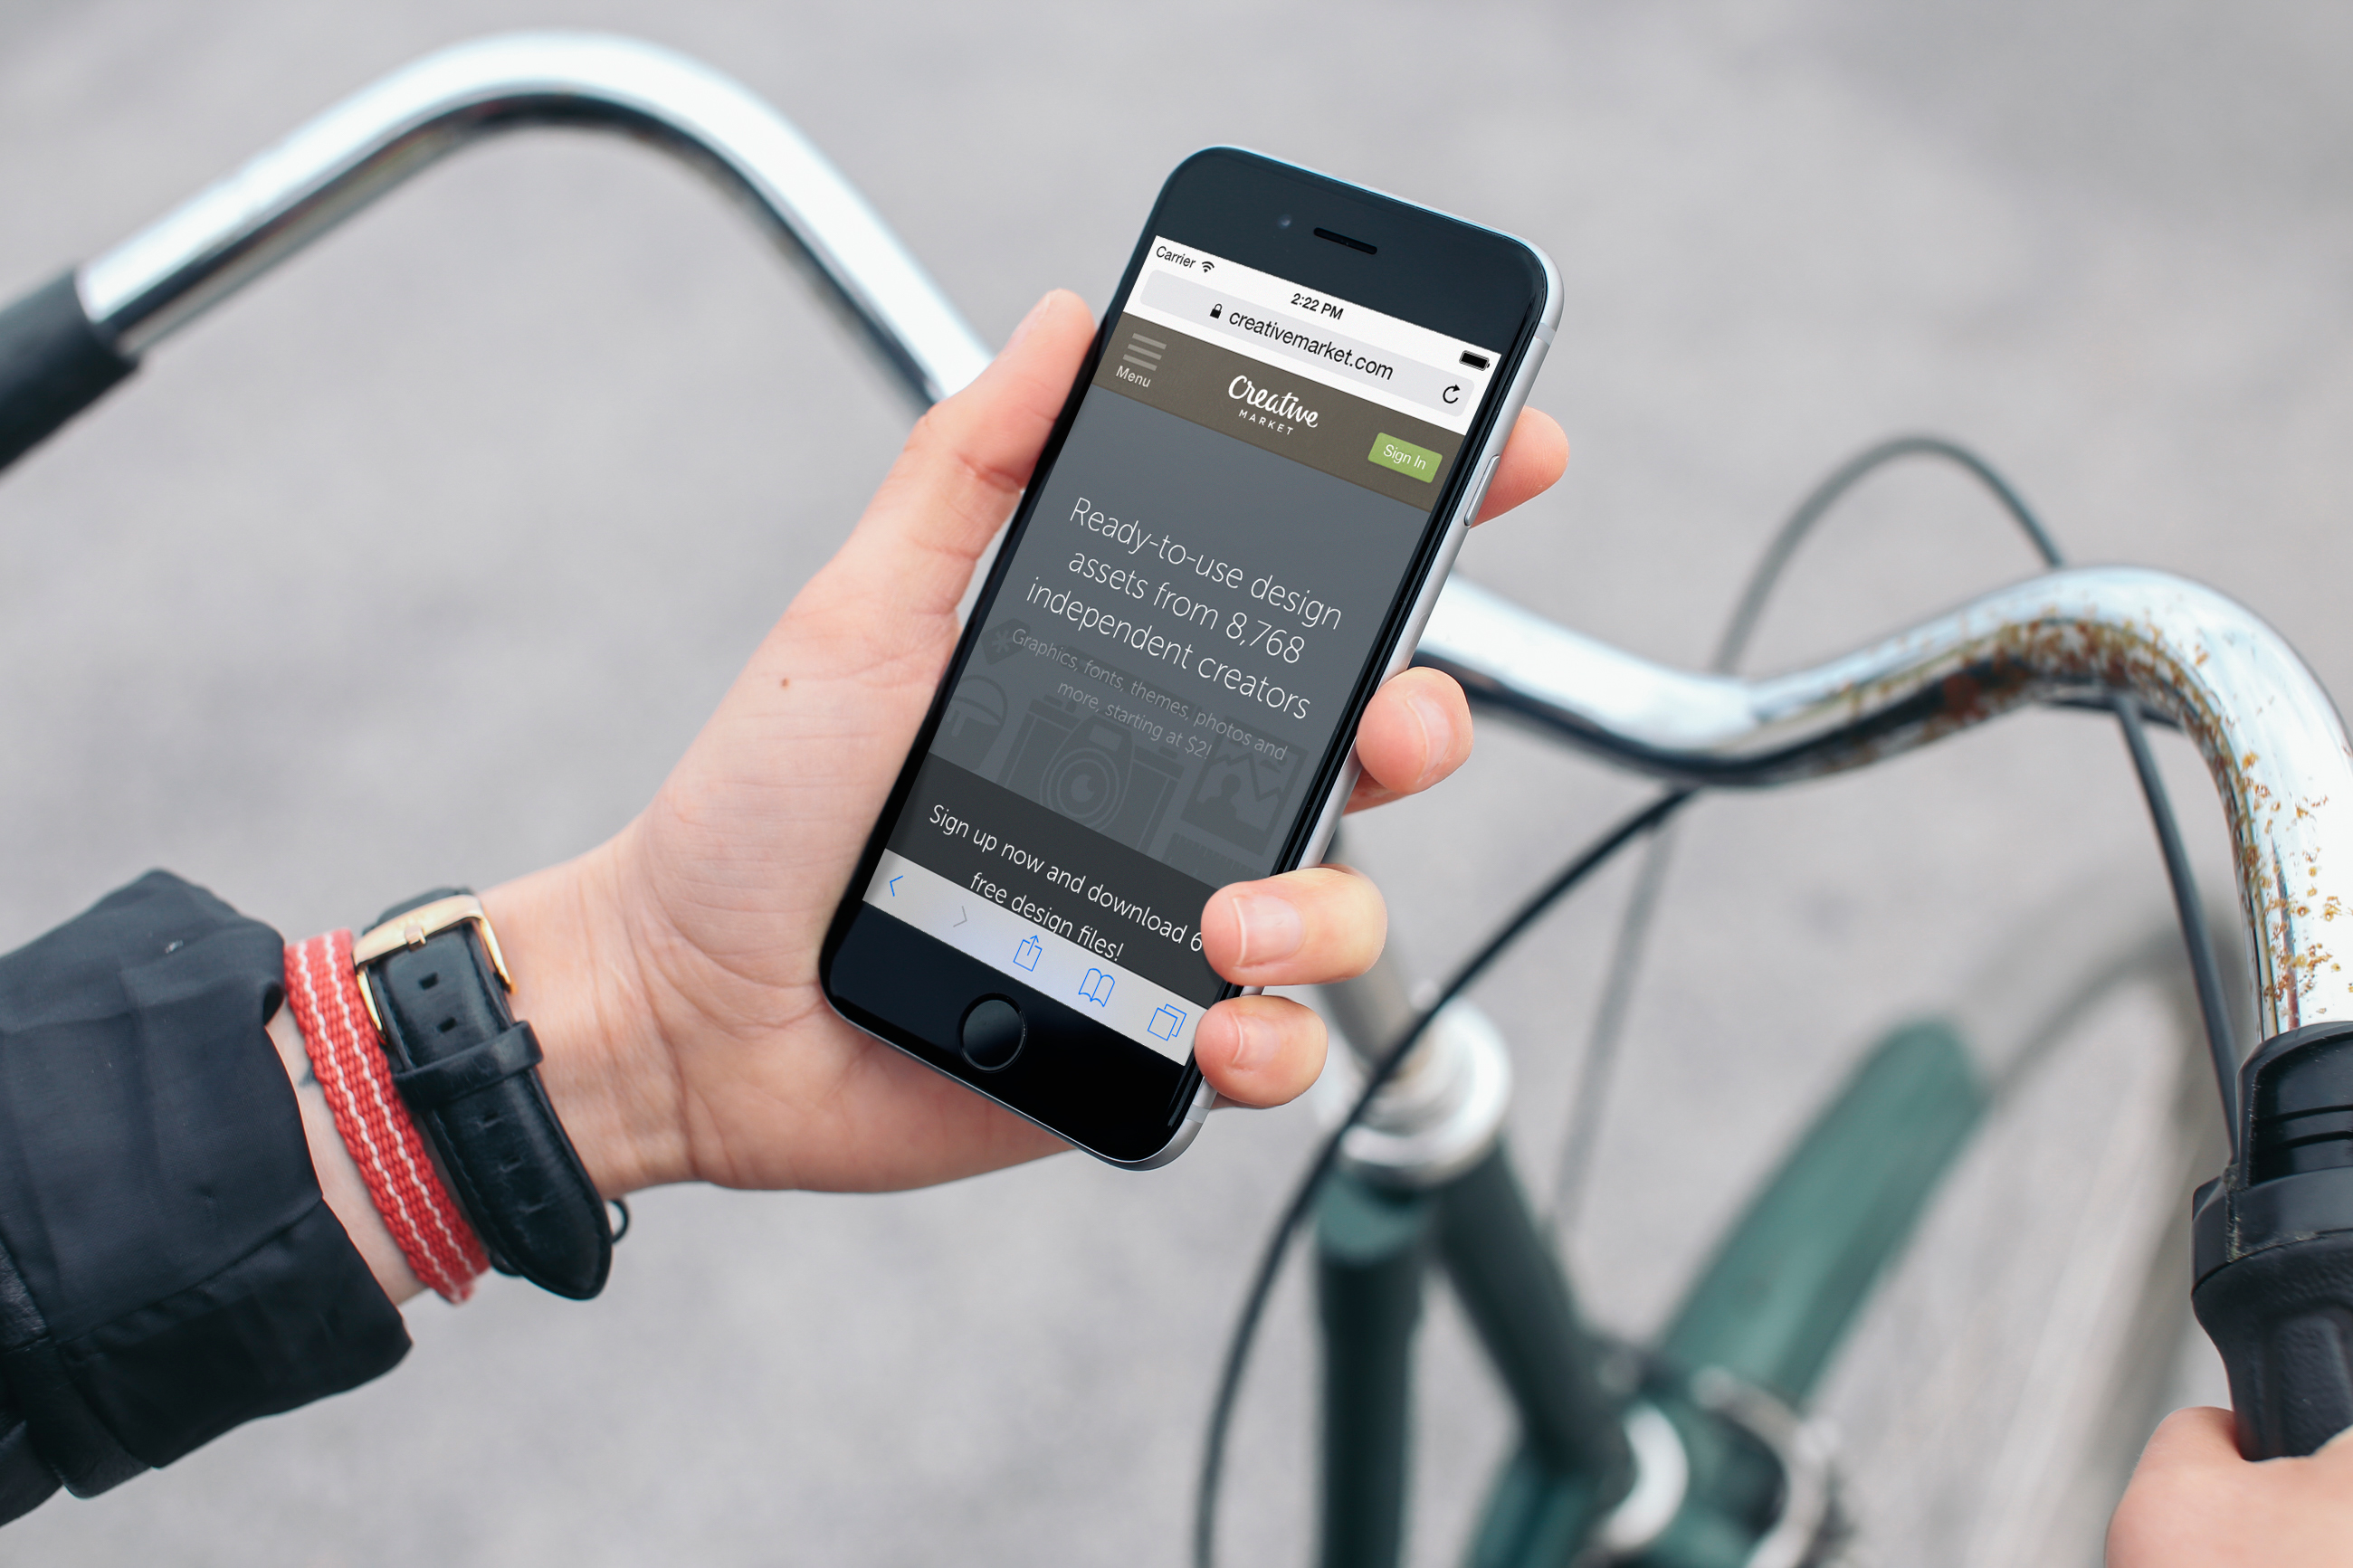 iPhone-6-Mockup-on-Bike